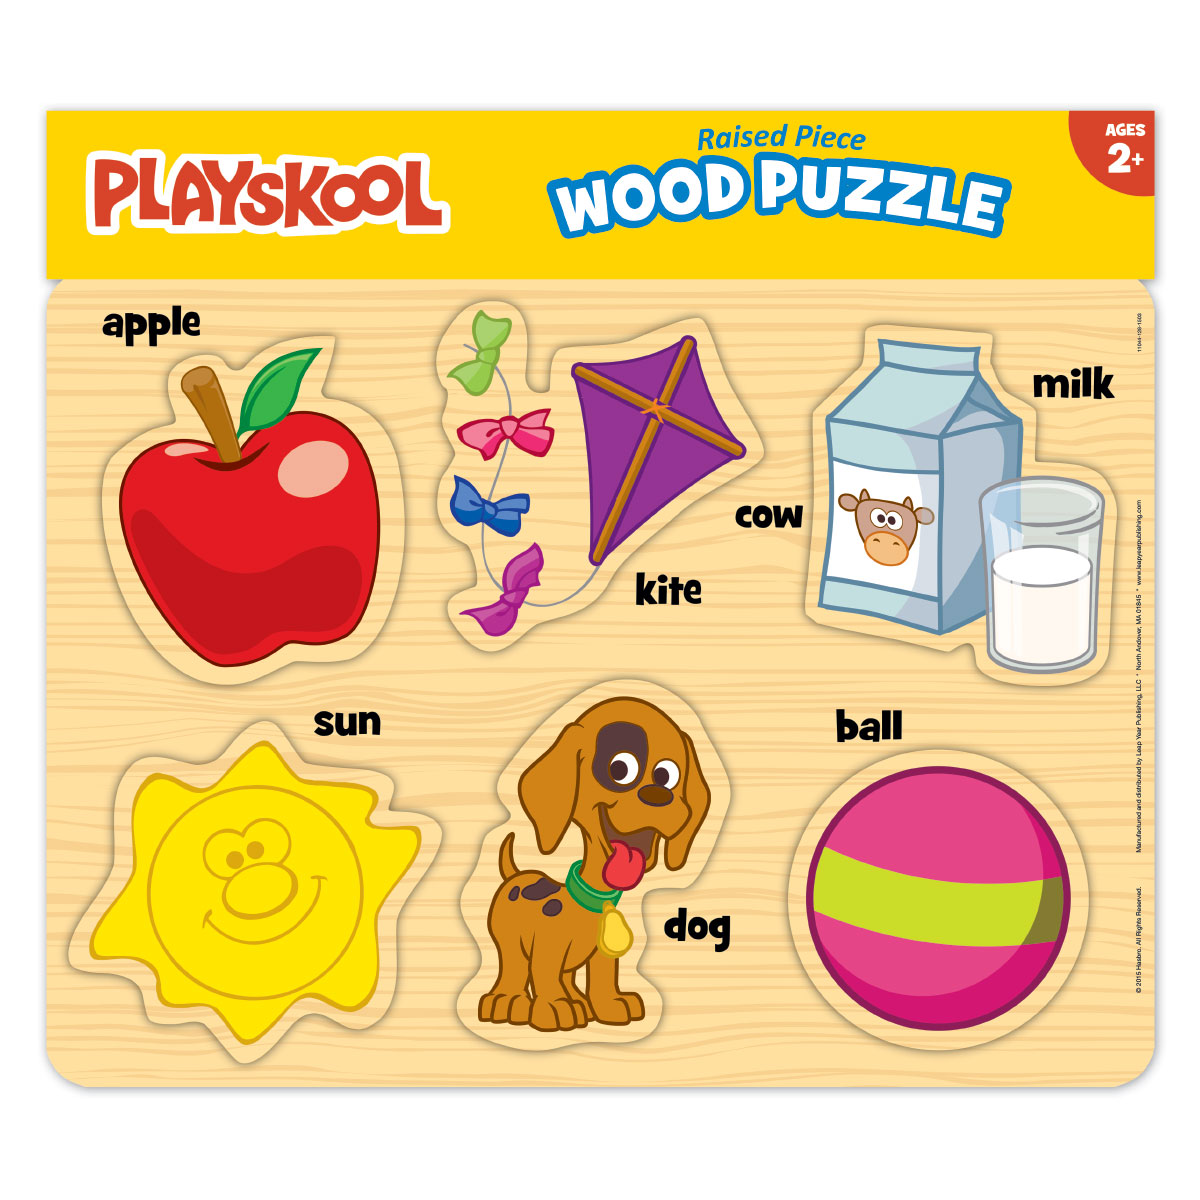 picture of a wooden children's puzzle